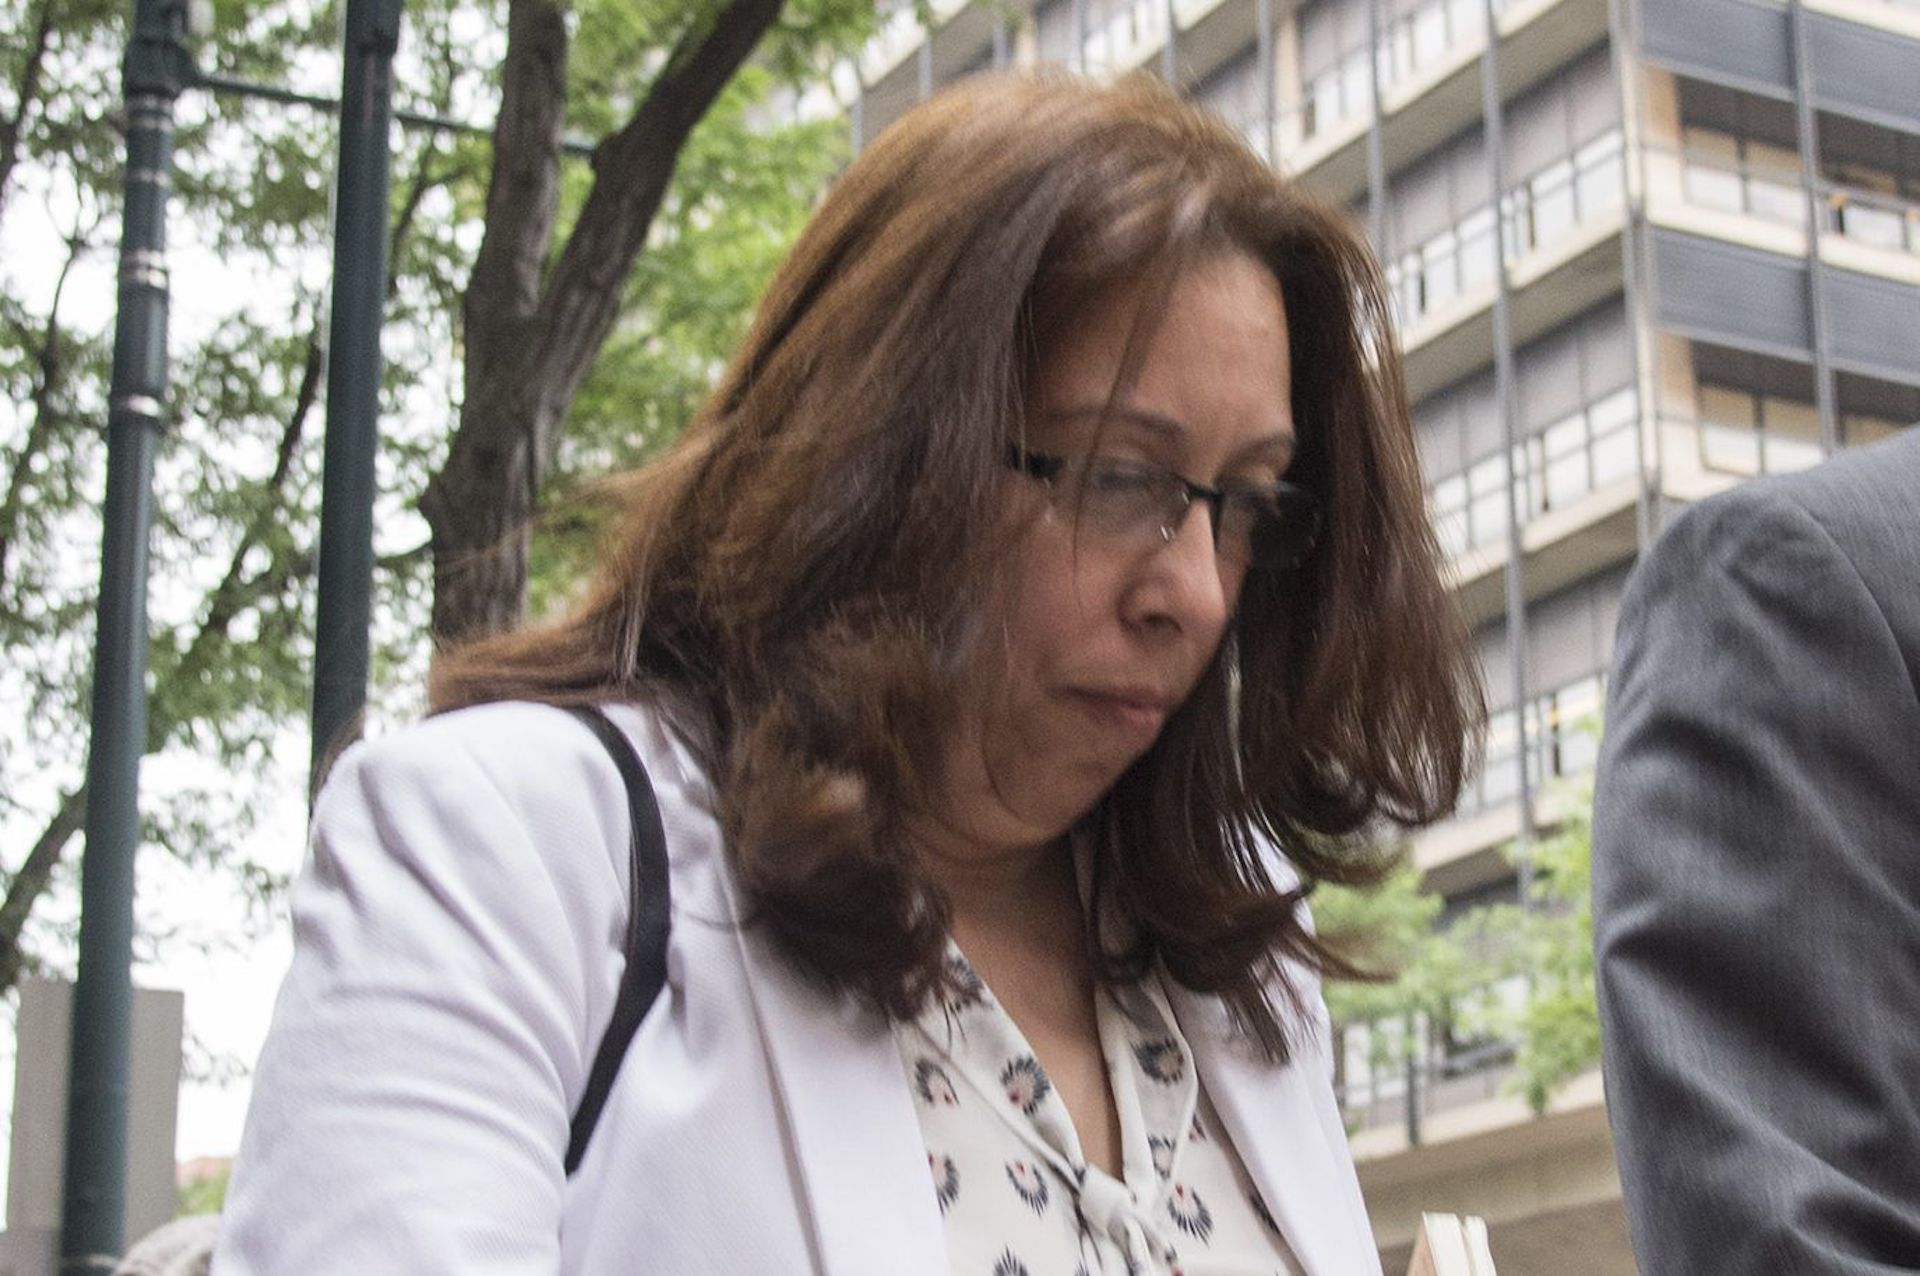 Five years after quietly pleading guilty in an embezzlement scheme, much of the case against former state Rep. Leslie Acosta remains under a shroud of secrecy.